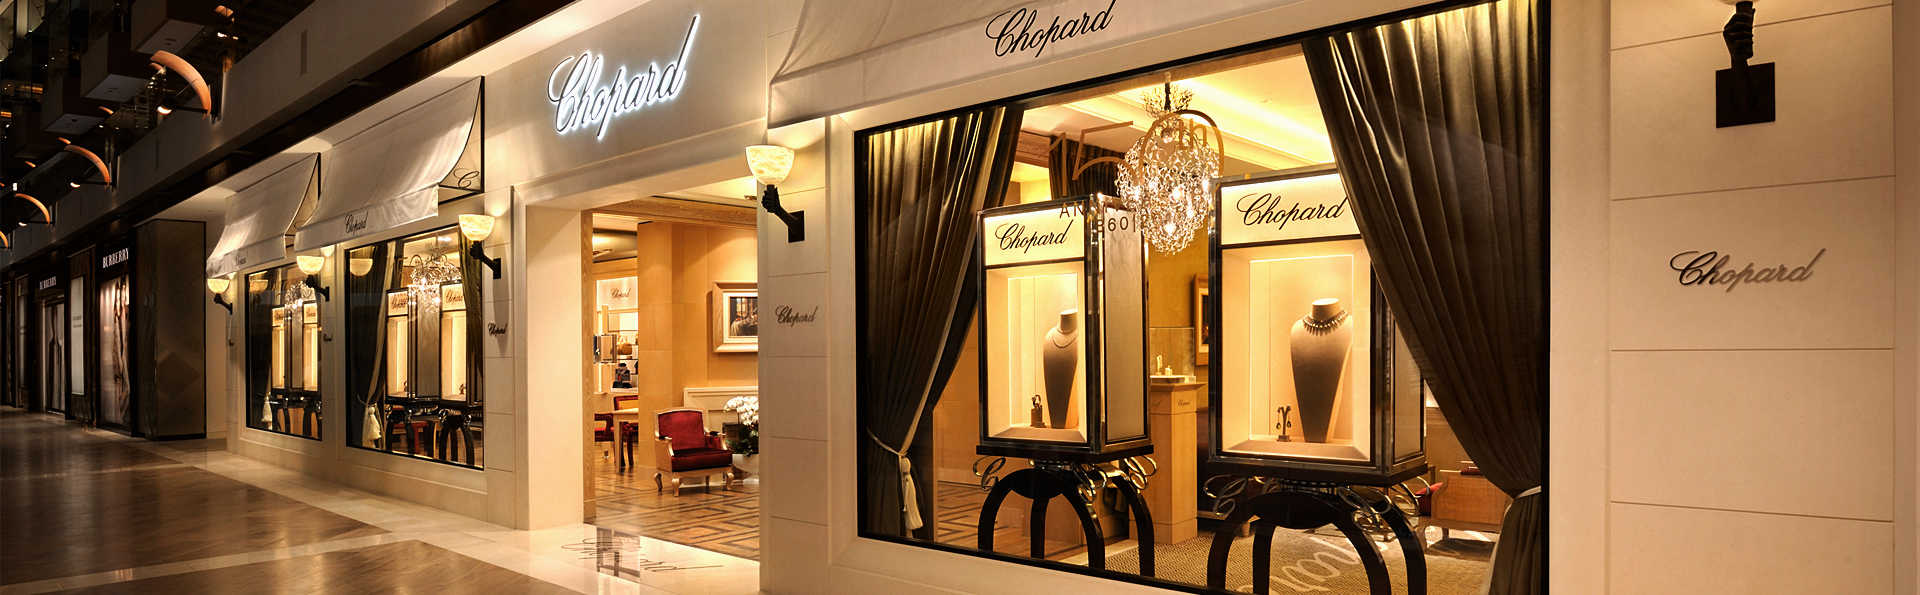 Chopard Watches in The Shoppes at Marina Bay Sands